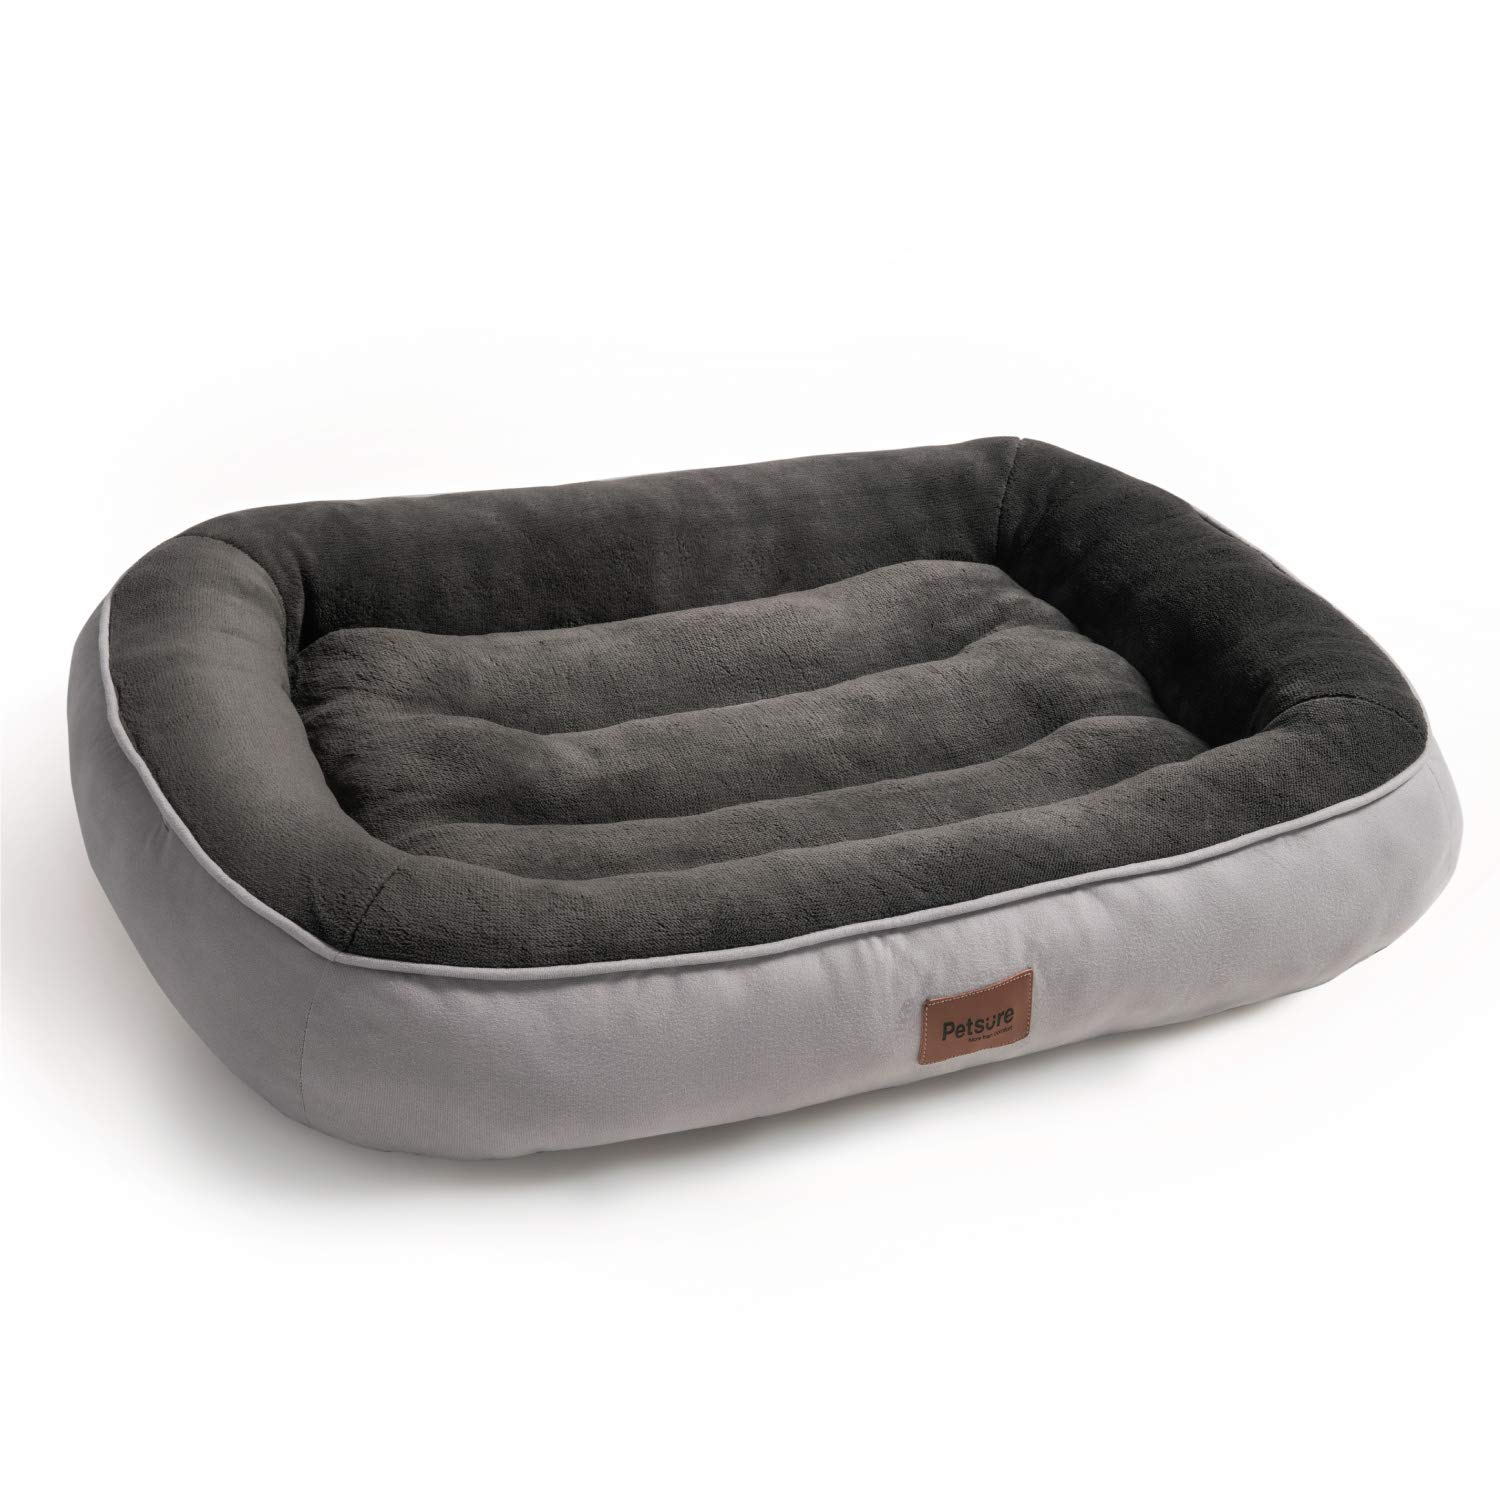 Bedsure Plush Dog Bed Extra Large Brown Machine Washable Pet Bolster Bed for Large Dogs Up to 45 KG 110x76x18cm